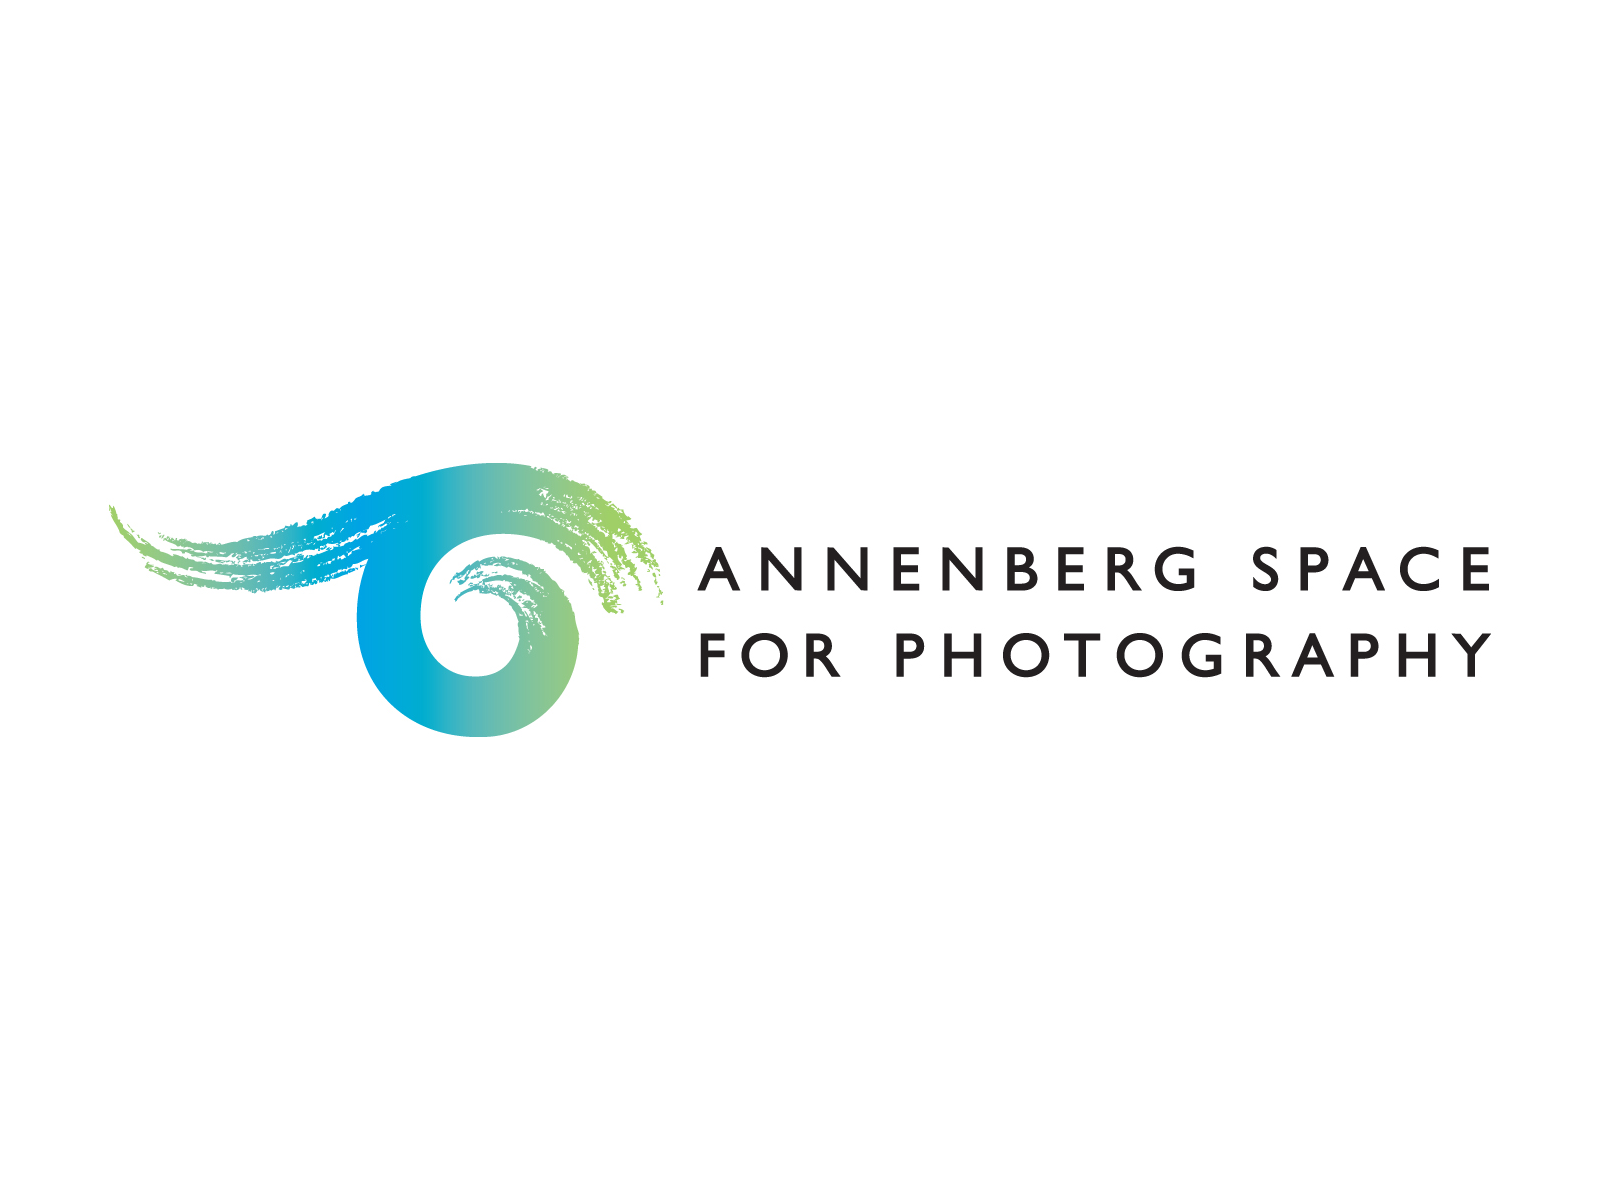 Annenberg-Space-for-Photography-logo-logotype.png